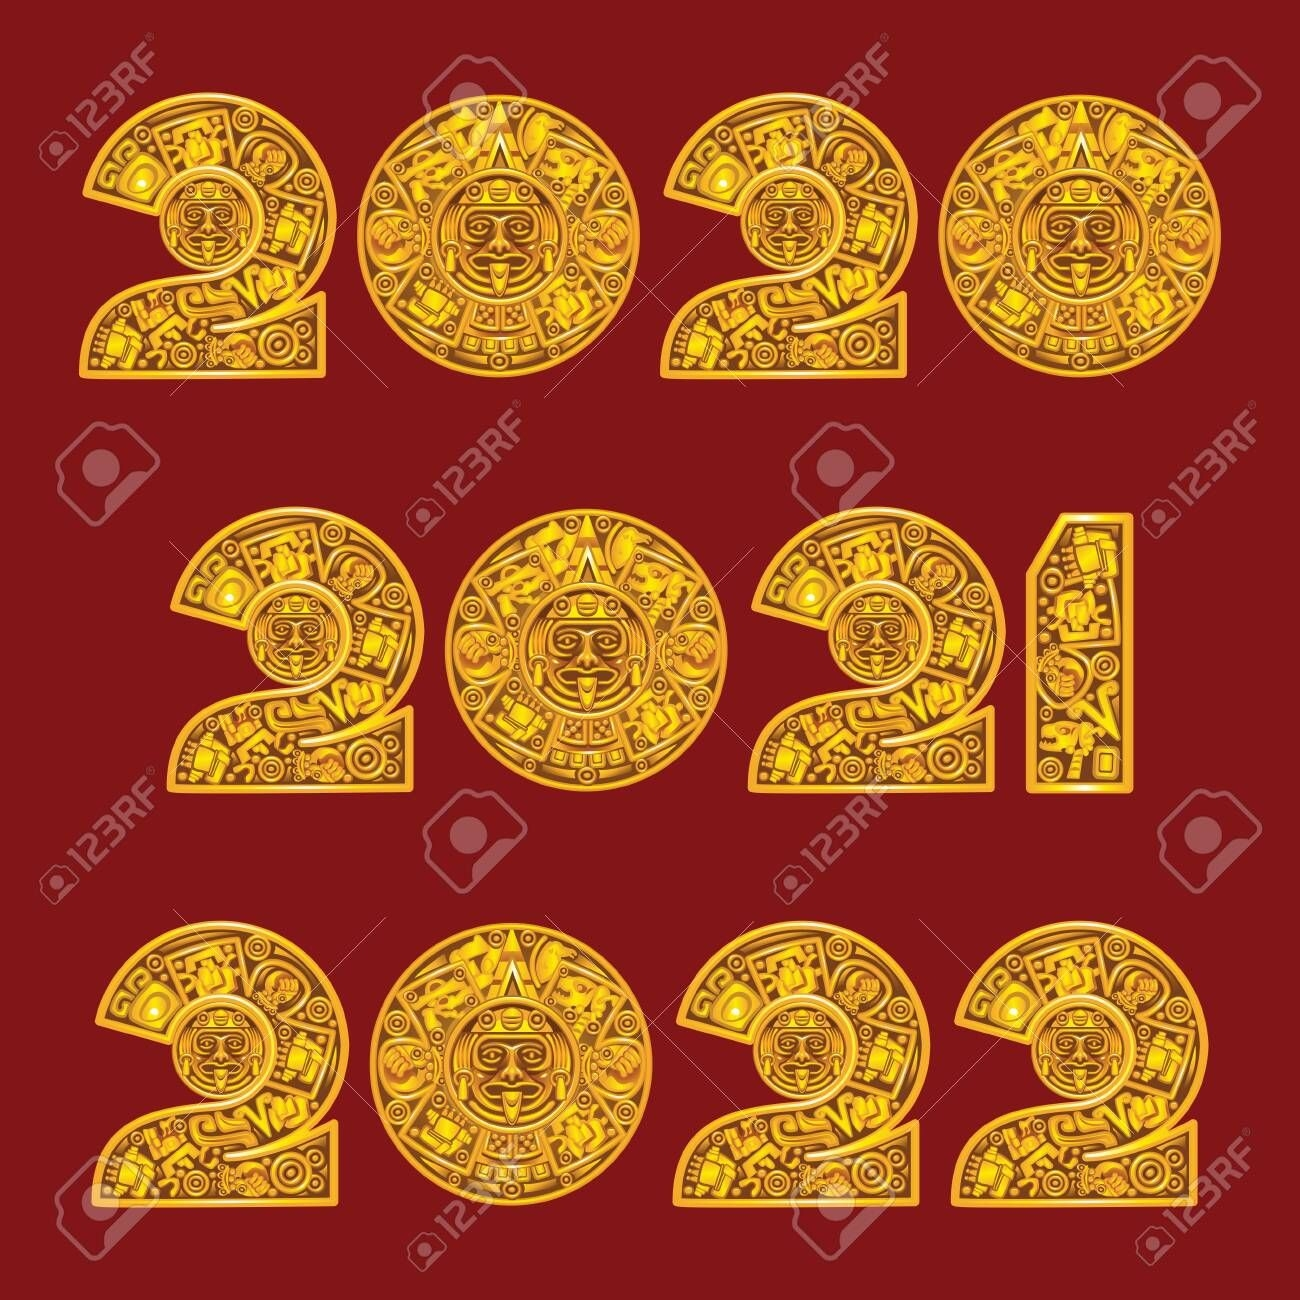 2020, 2021 And 2022 In The Style Of The Mayan Calendar